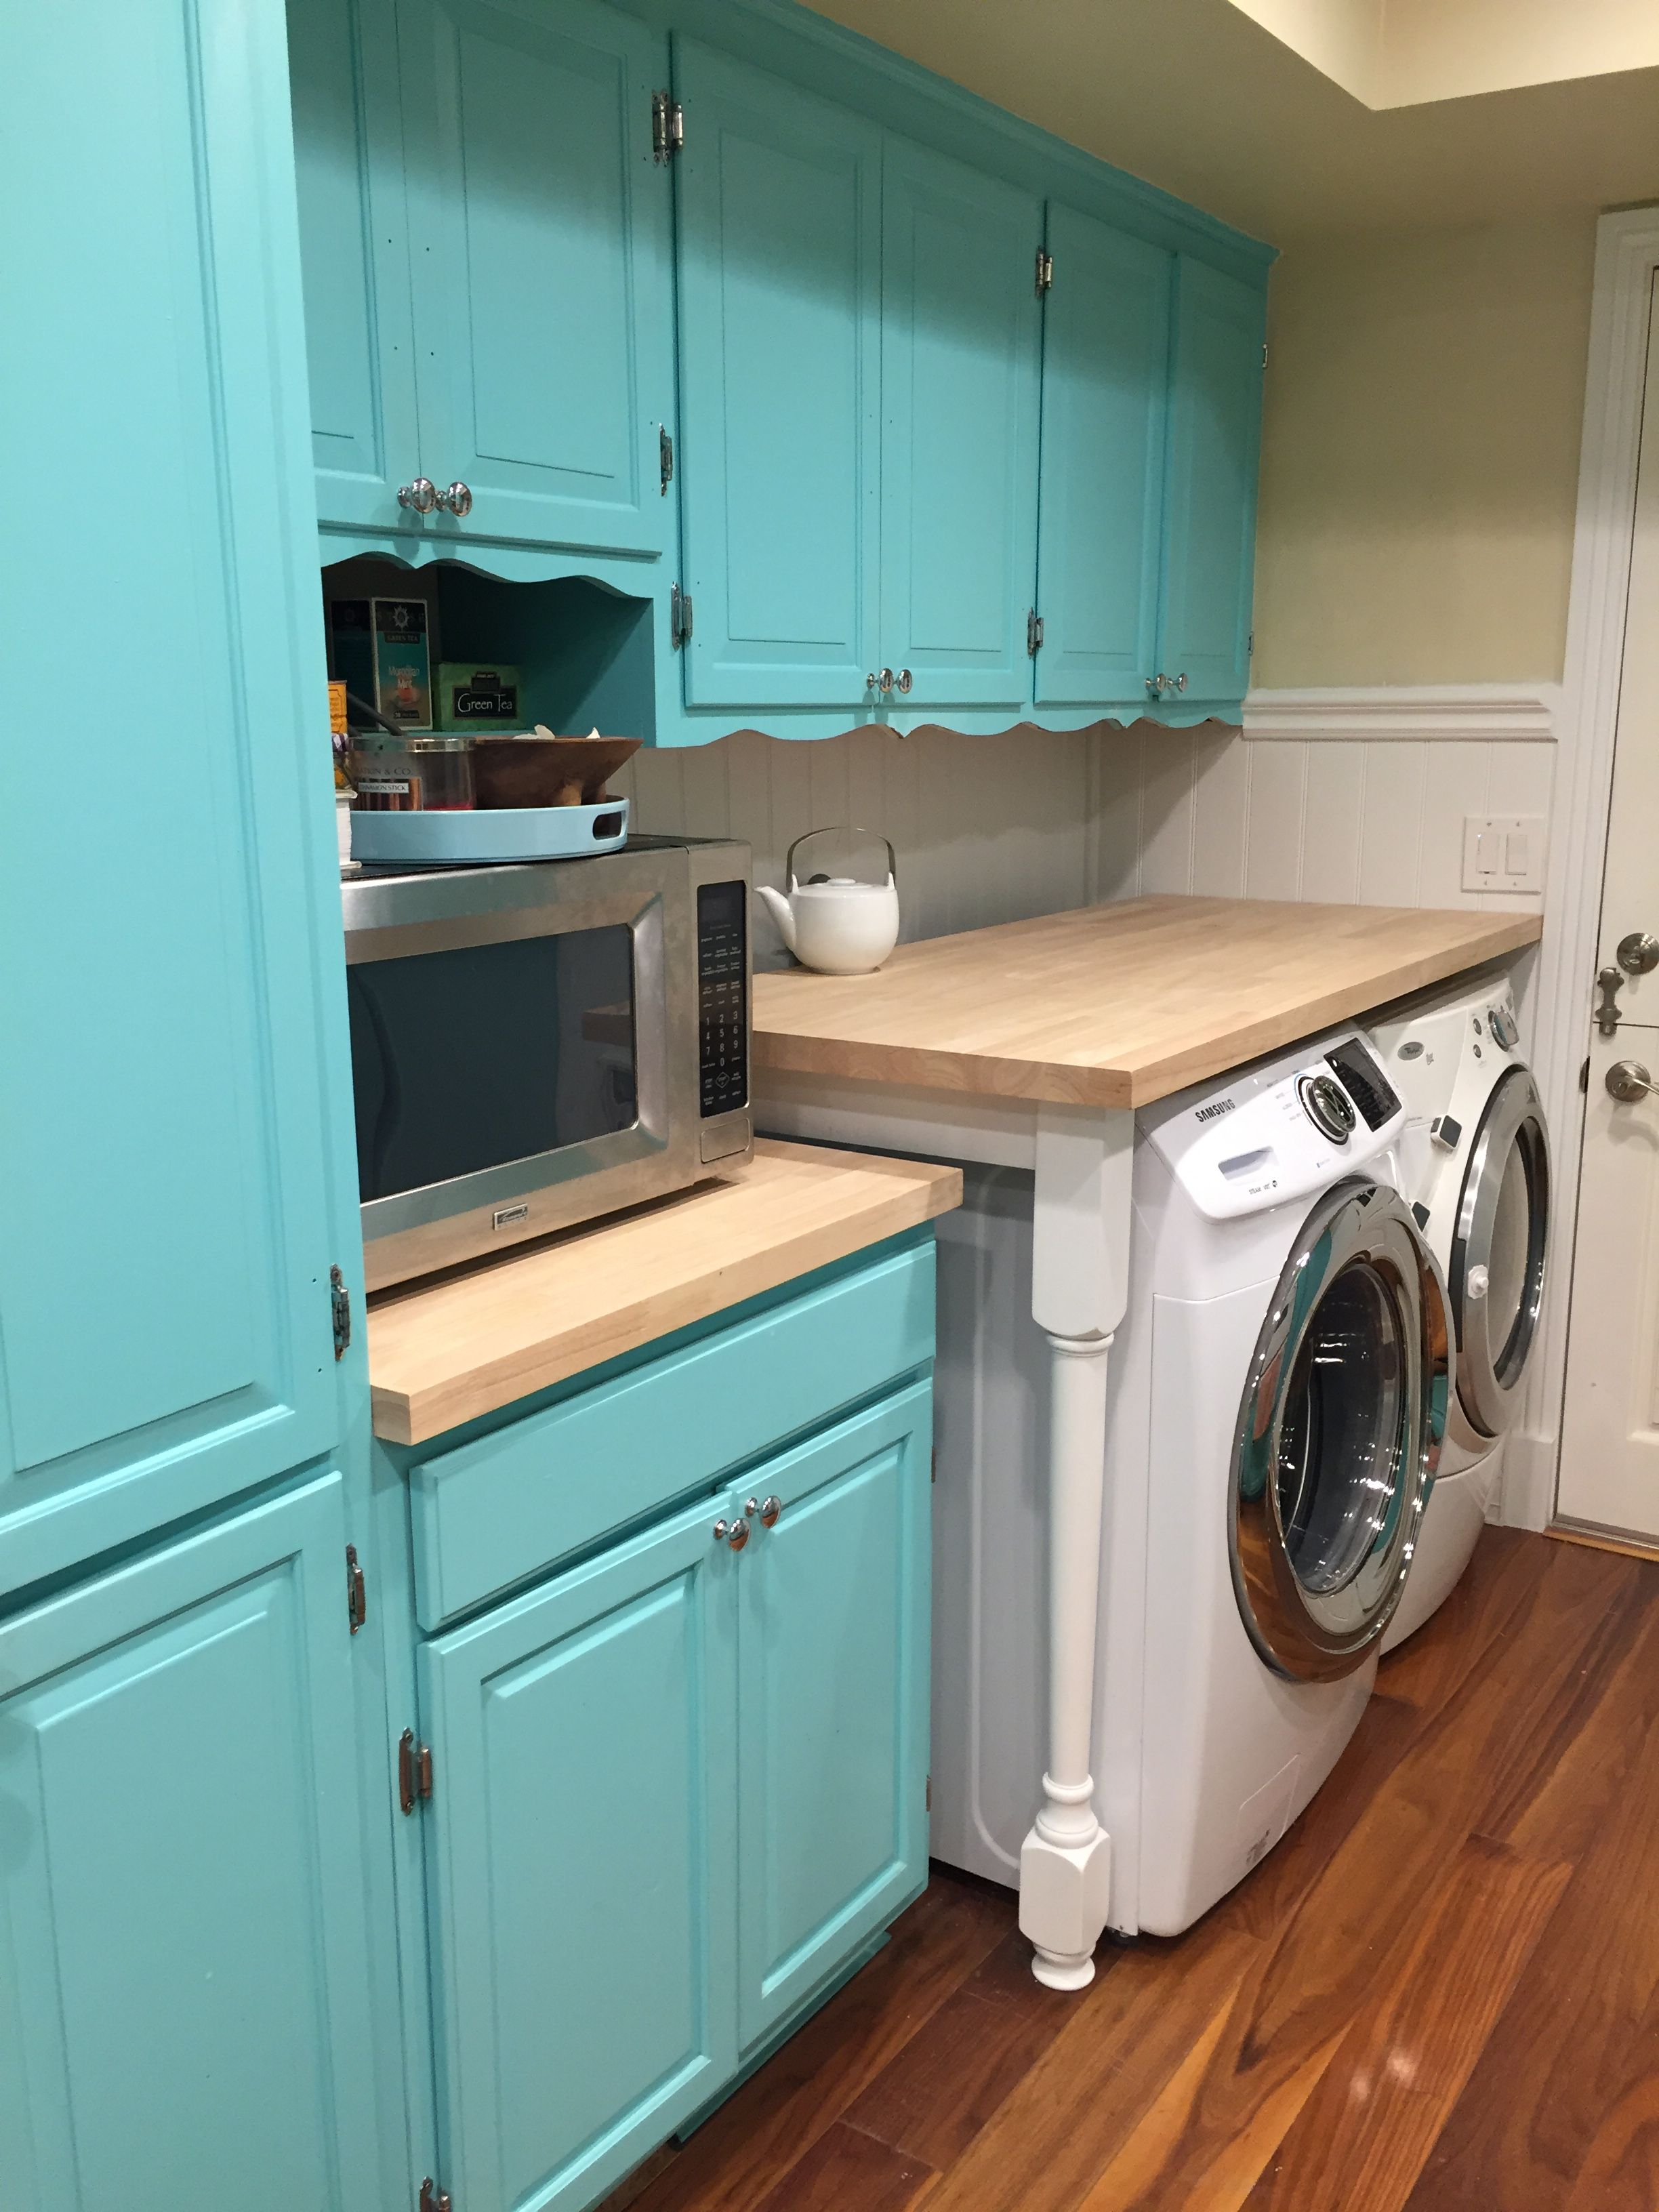 This Laundry Room Countertop Is Built Using Butcher Block And